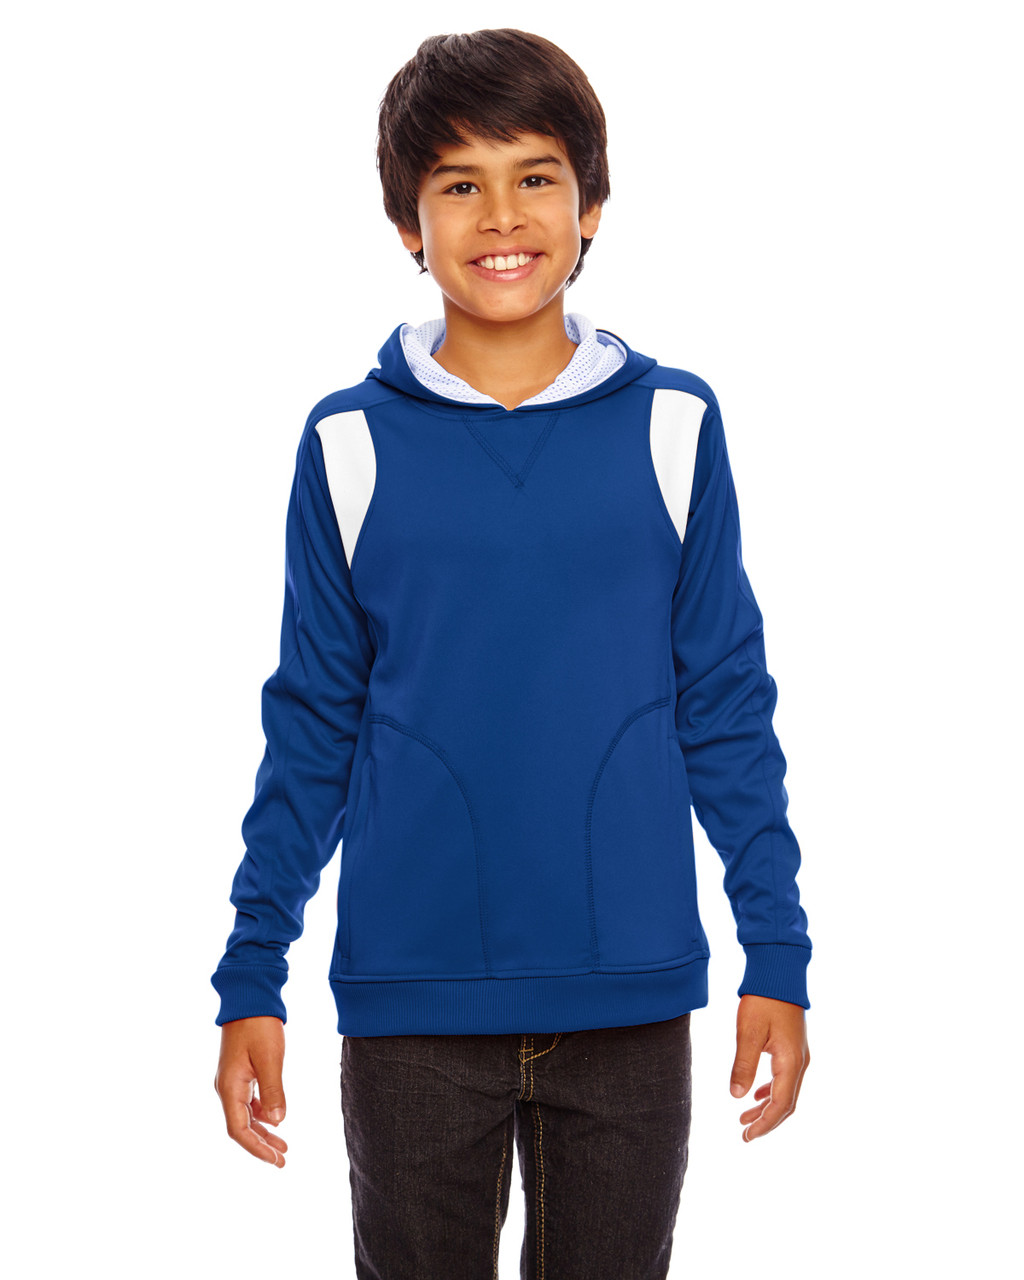 Royal/White - TT30Y Team 365 Youth Elite Performance Hoodie | BlankClothing.ca